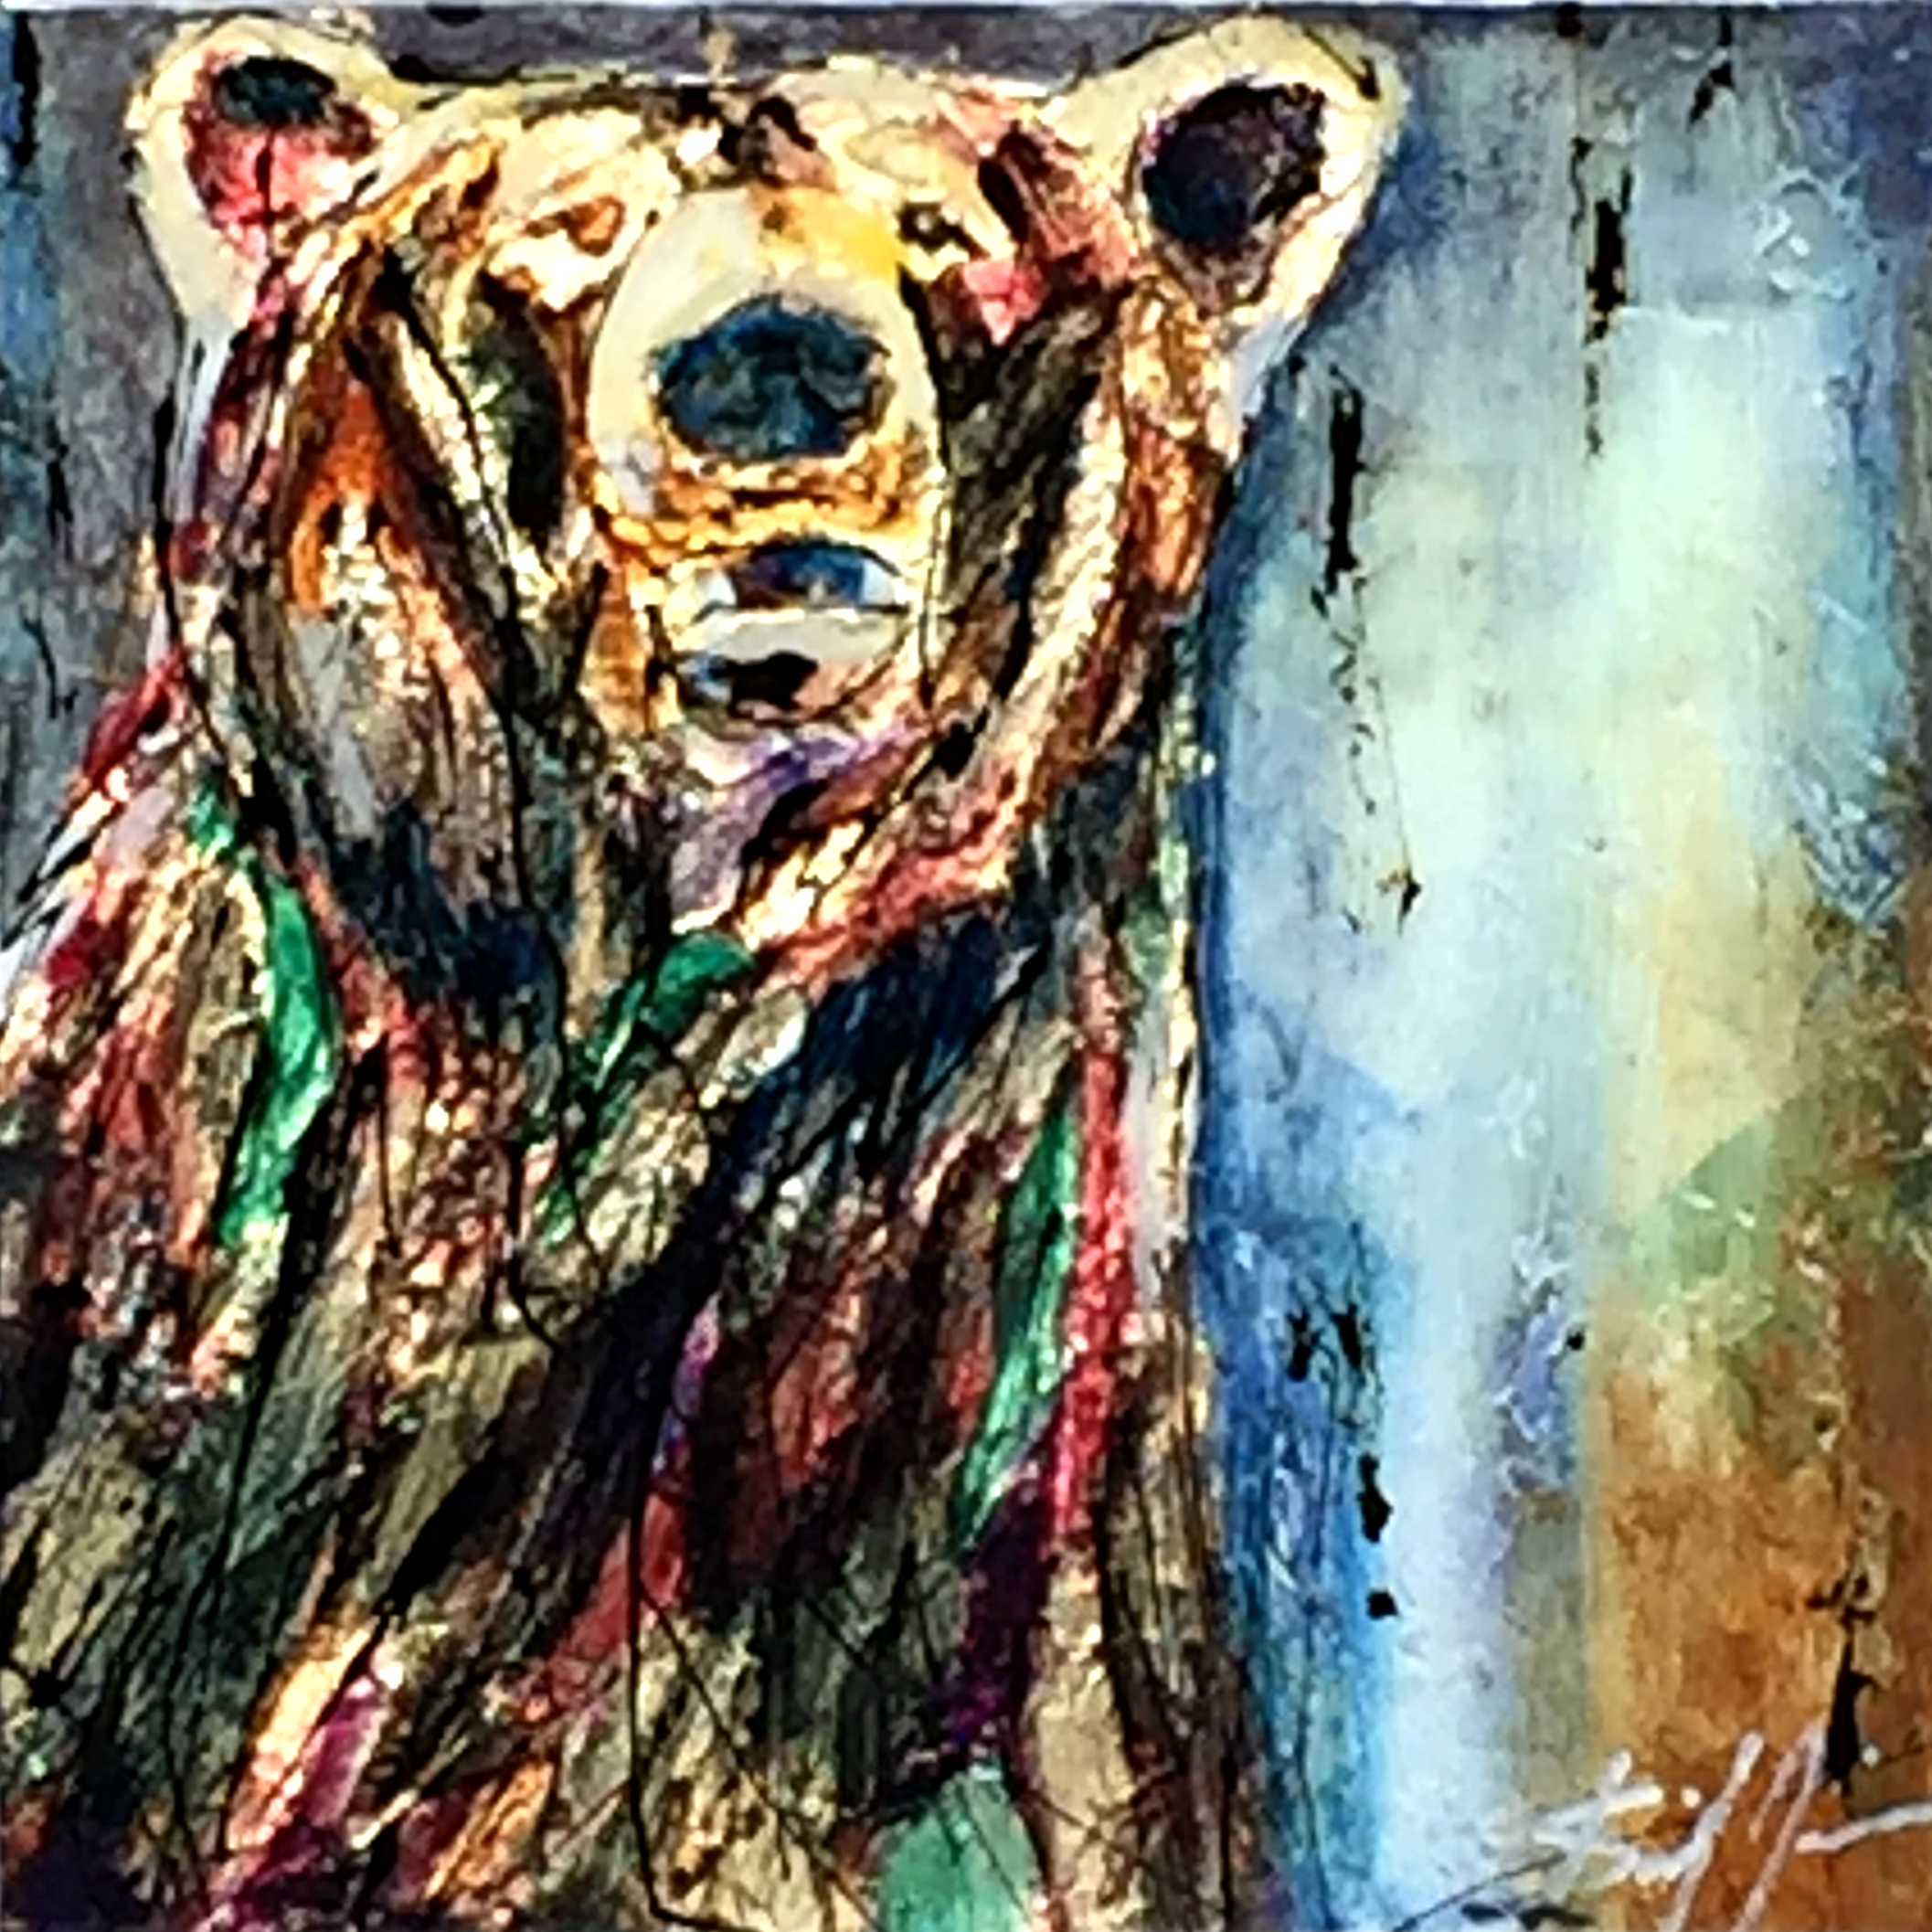 Making Sure, mixed media bear painting by David Zimmerman | Effusion Art Gallery + Cast Glass Studio, Invermere BC